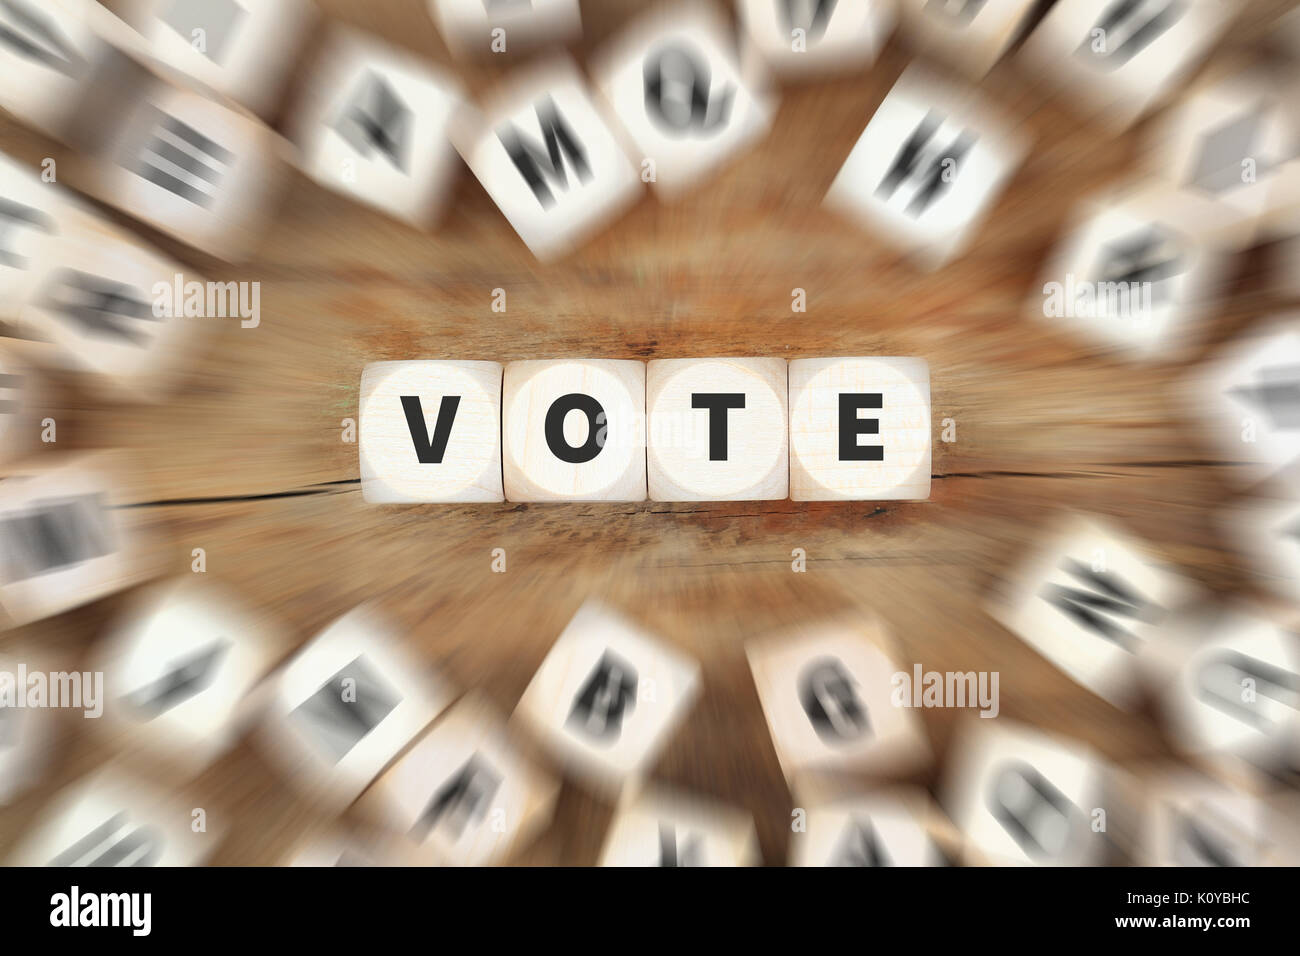 Vote election politics dice business concept idea - Stock Image